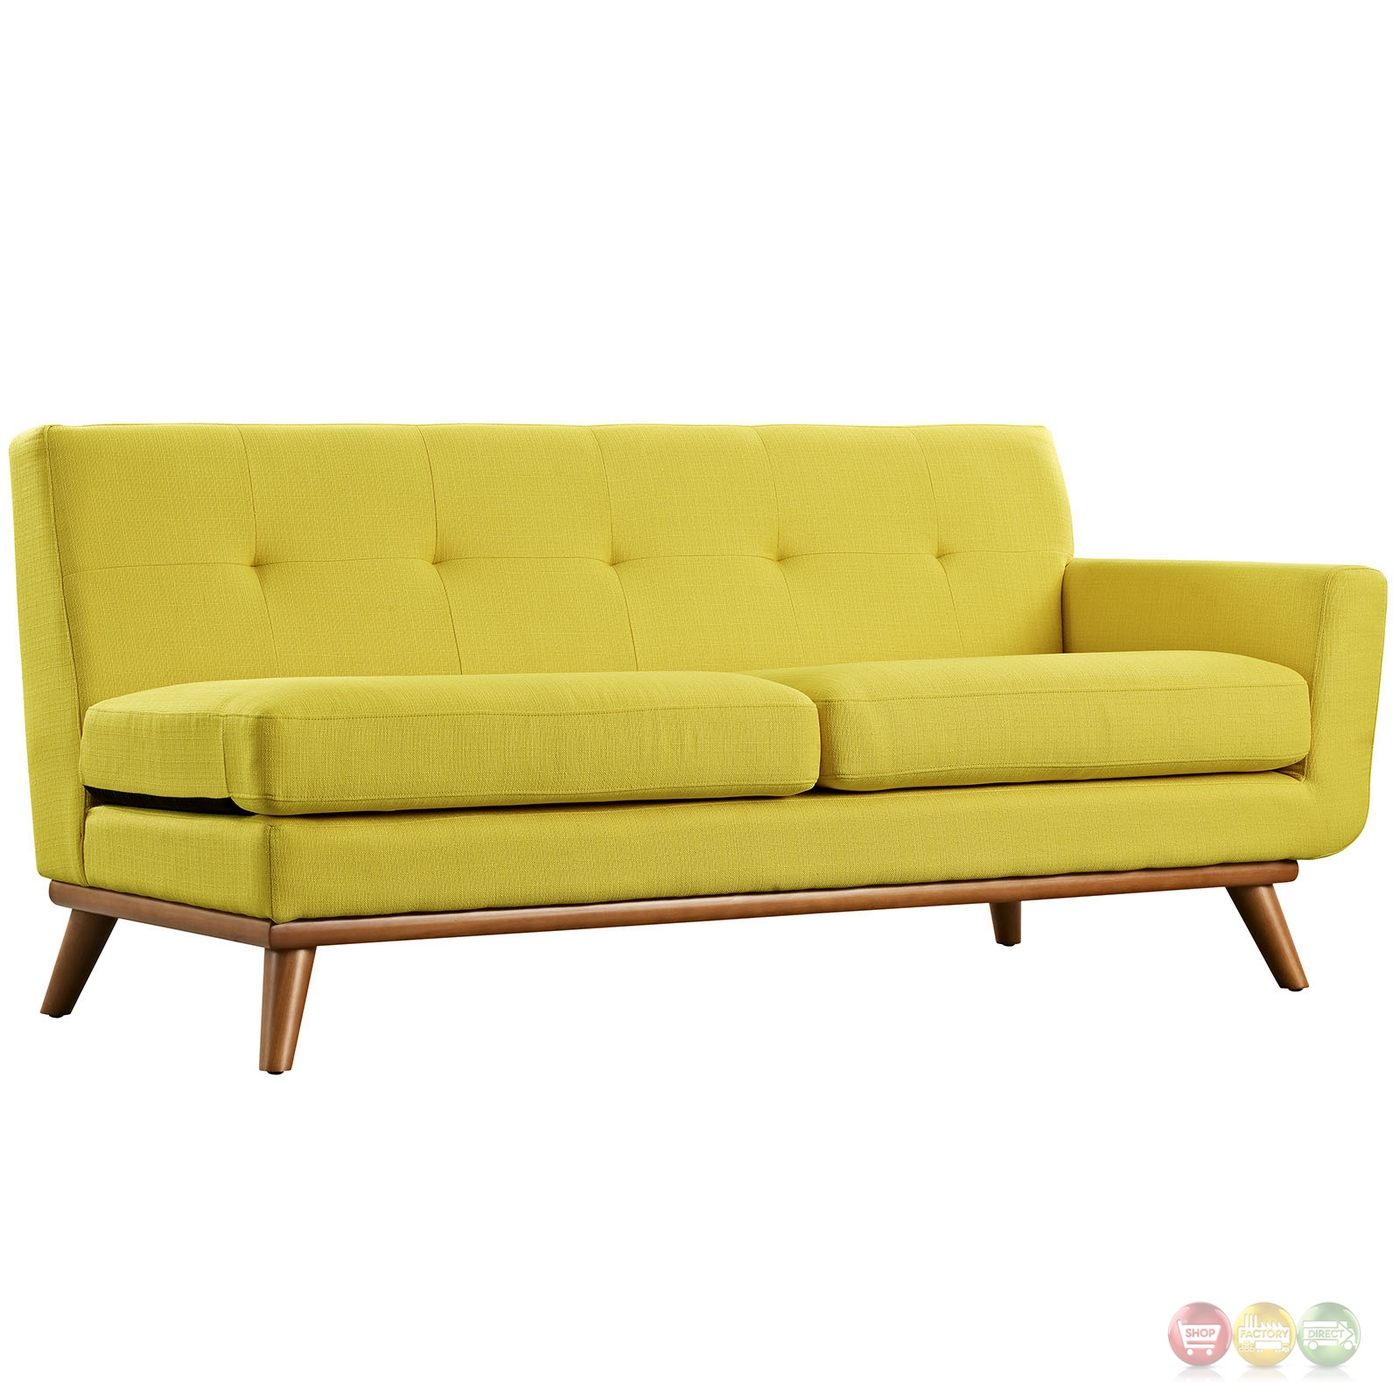 Wood Frame Sofa : Engage Left-facing Button-tufted Sectional Sofa With Wood Frame, Sunny